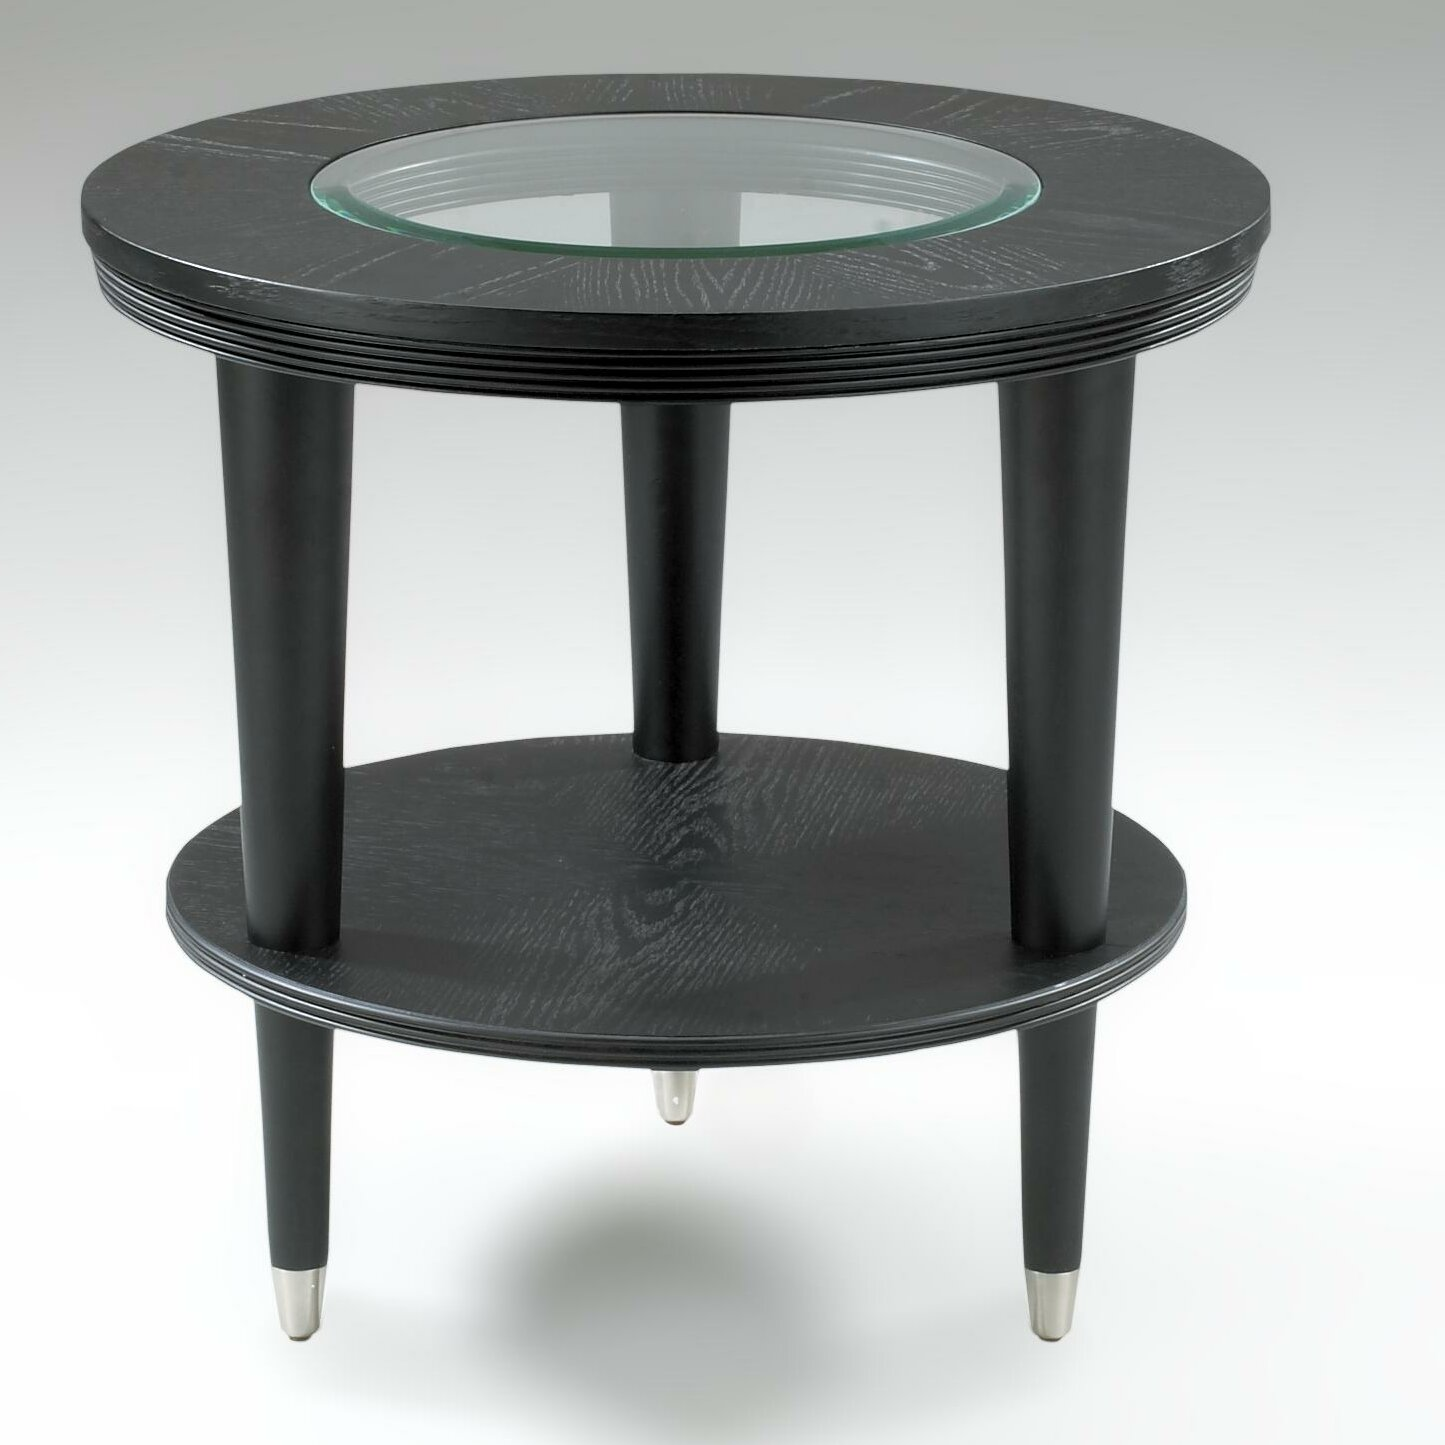 Klaussner Furniture Fowler End Table amp Reviews Wayfair : Klaussner Furniture Fowler End Table from www.wayfair.com size 1445 x 1445 jpeg 178kB